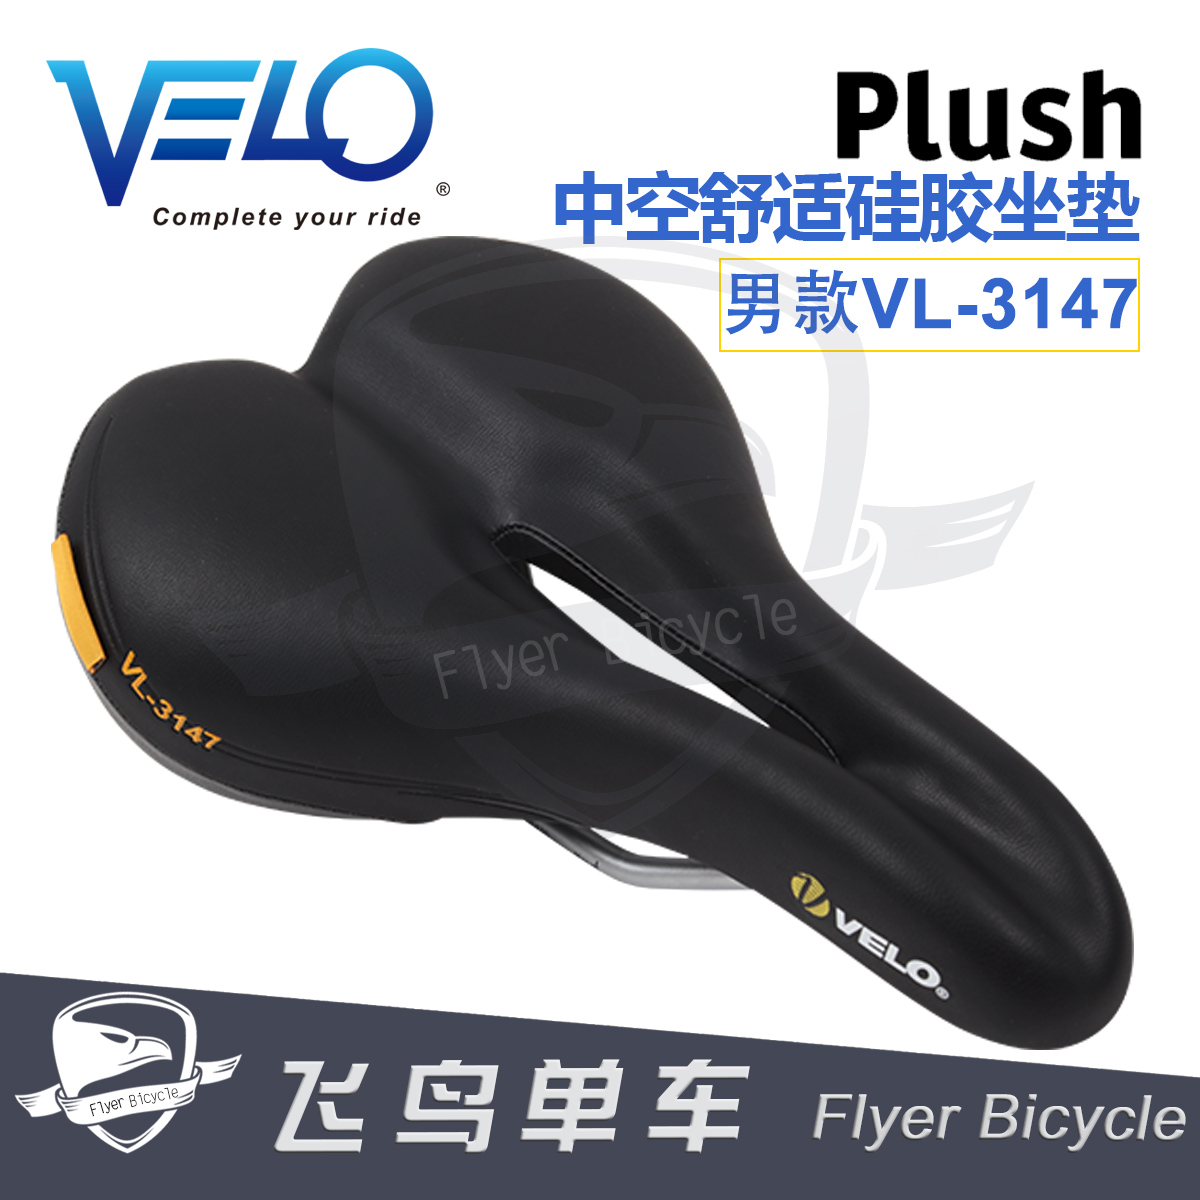 [The goods stop production and no stock]VELO Ville bicycle cushion mountainous bicycle saddle package comfortable thickening long-distance riding equipment accessories 3147